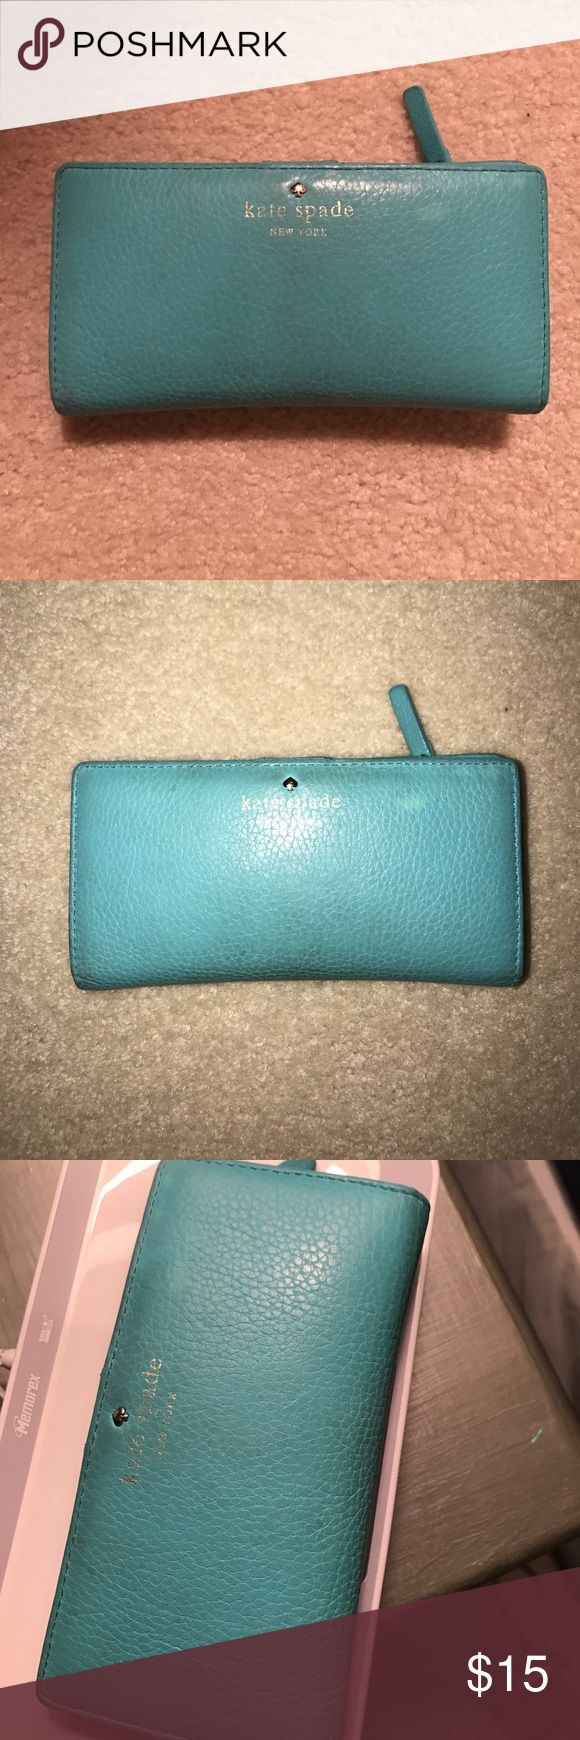 "SALE Kate Spade Jackson Street Stacey Wallet Pebbled leather turquoise wallet. Snap button close. Change pocket, 12 card slots, ID slot, and 4 slots for cash. Fading, signs of wear, and markings as shown in pictures. Dimensions are 6.6"" L x 3.5"" H x 0.5 D as taken from Kate Spade website. kate spade Bags Wallets"